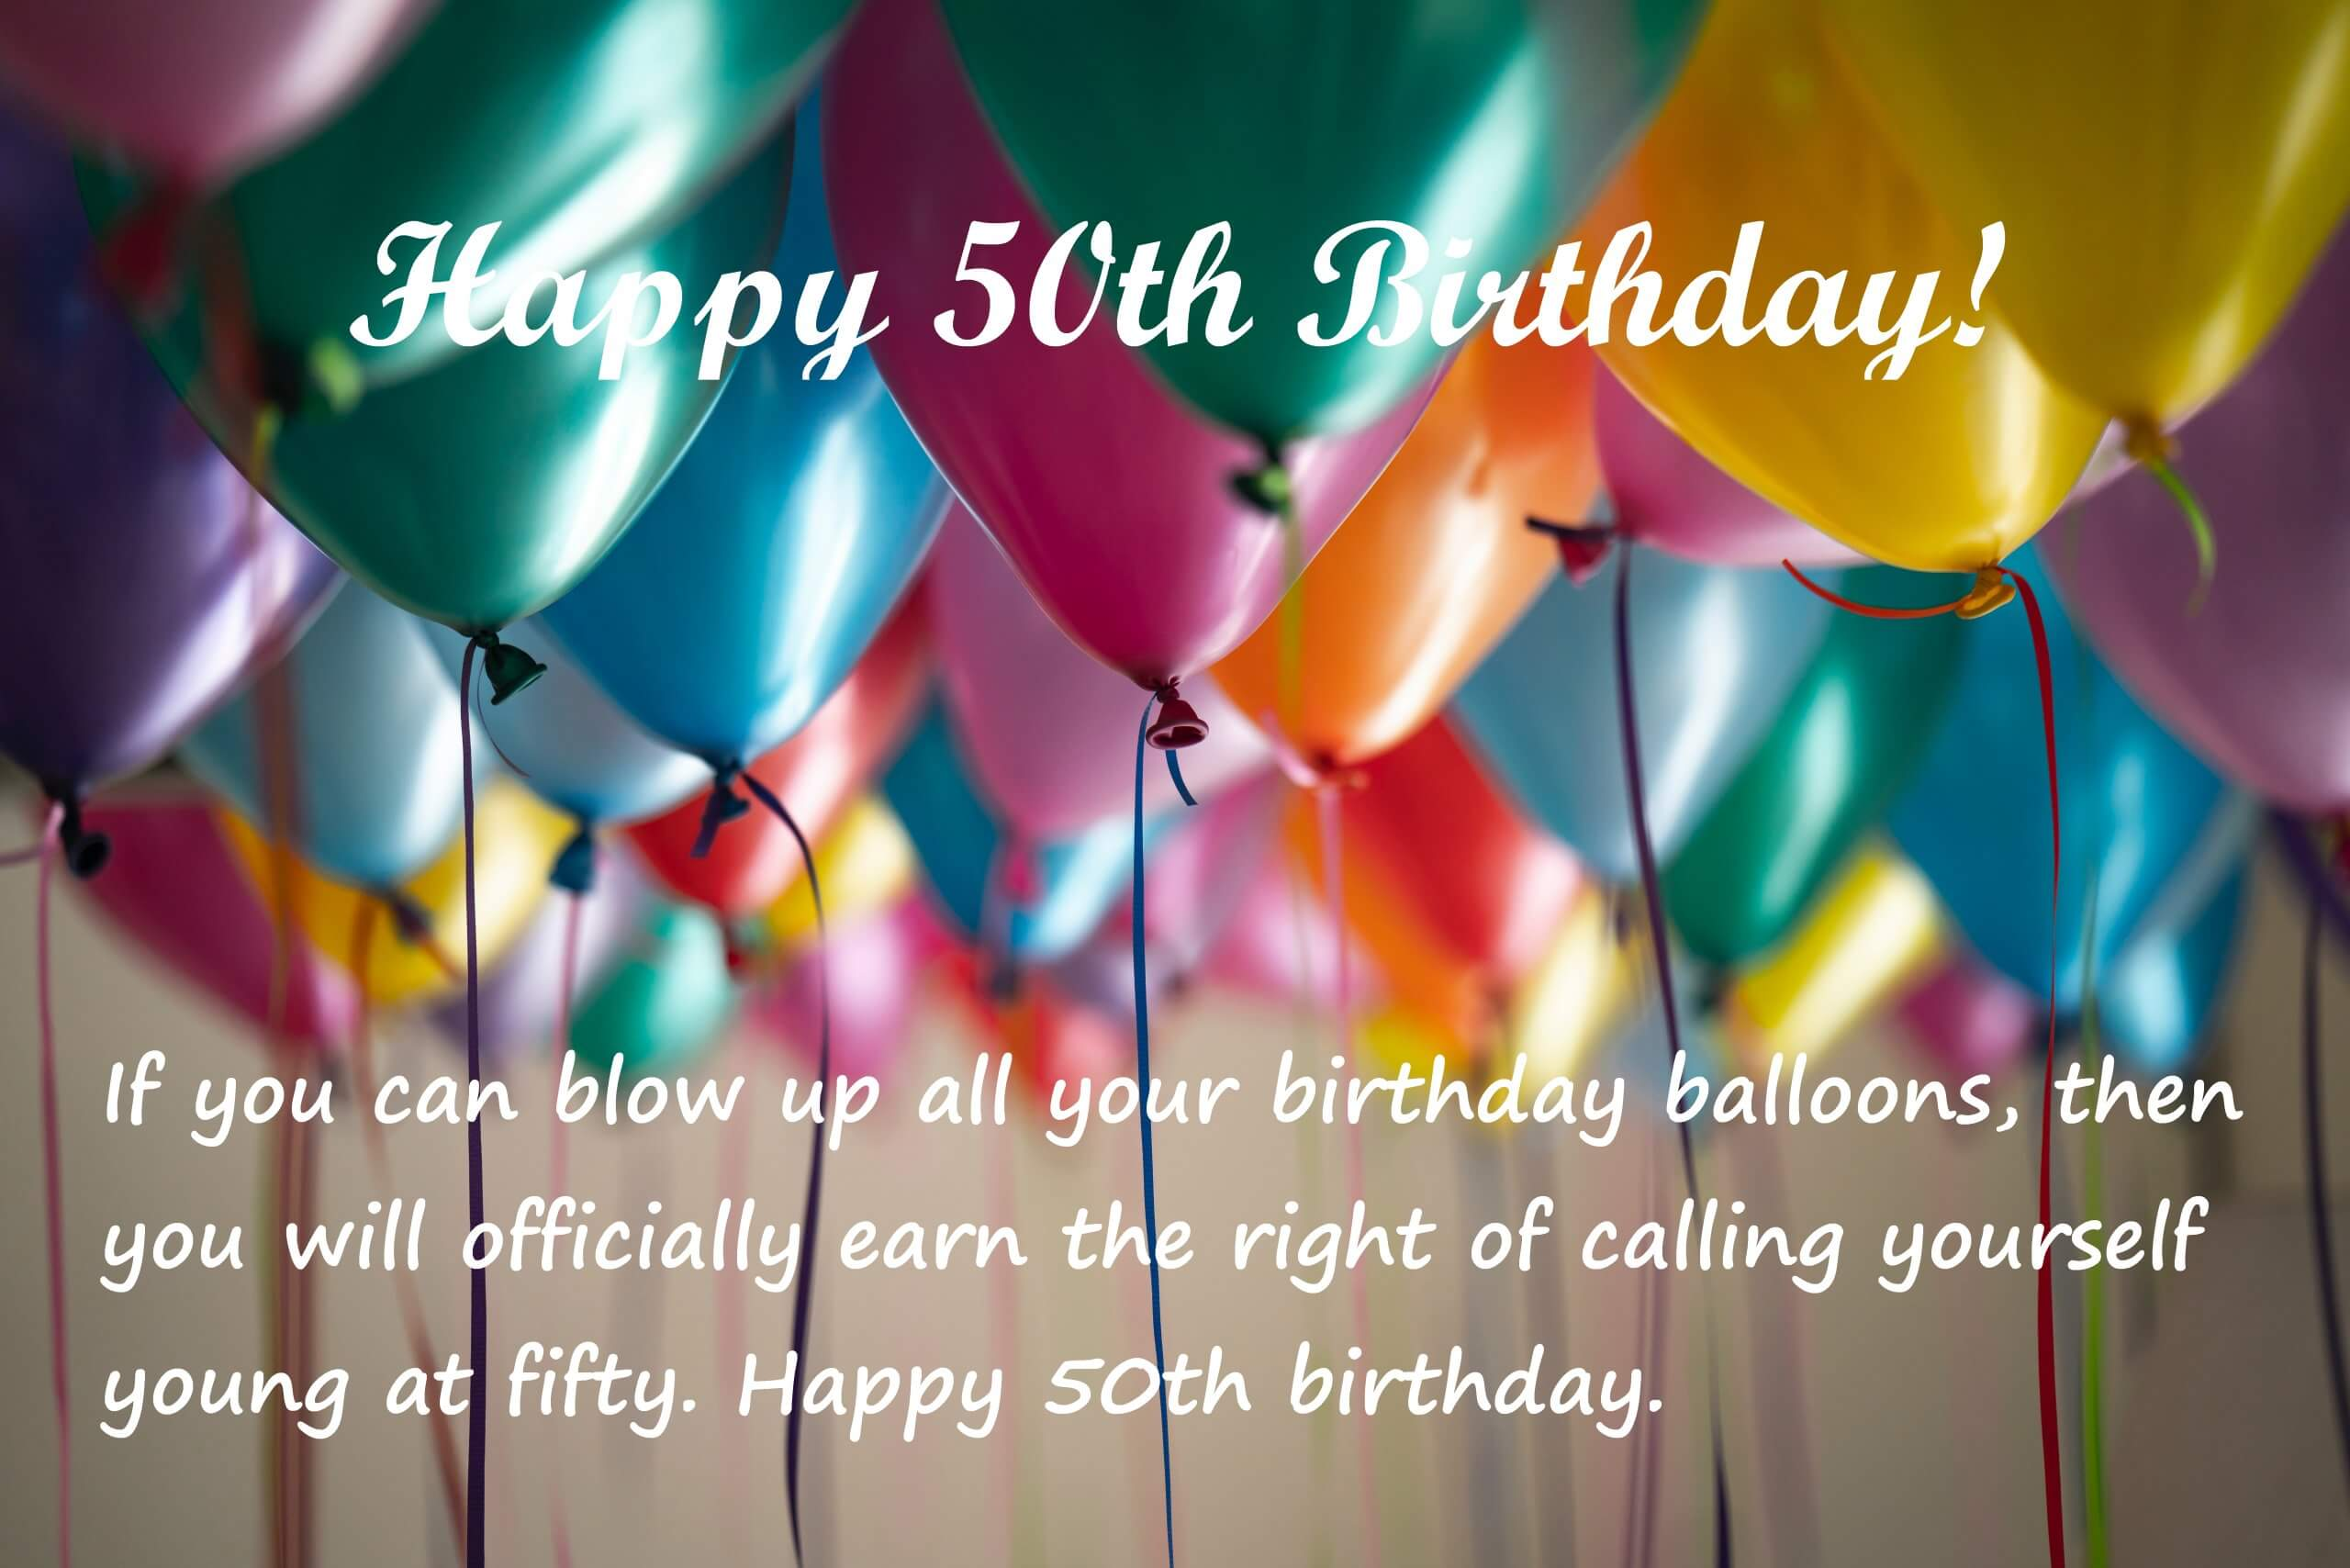 Funny 50th Birthday Messages